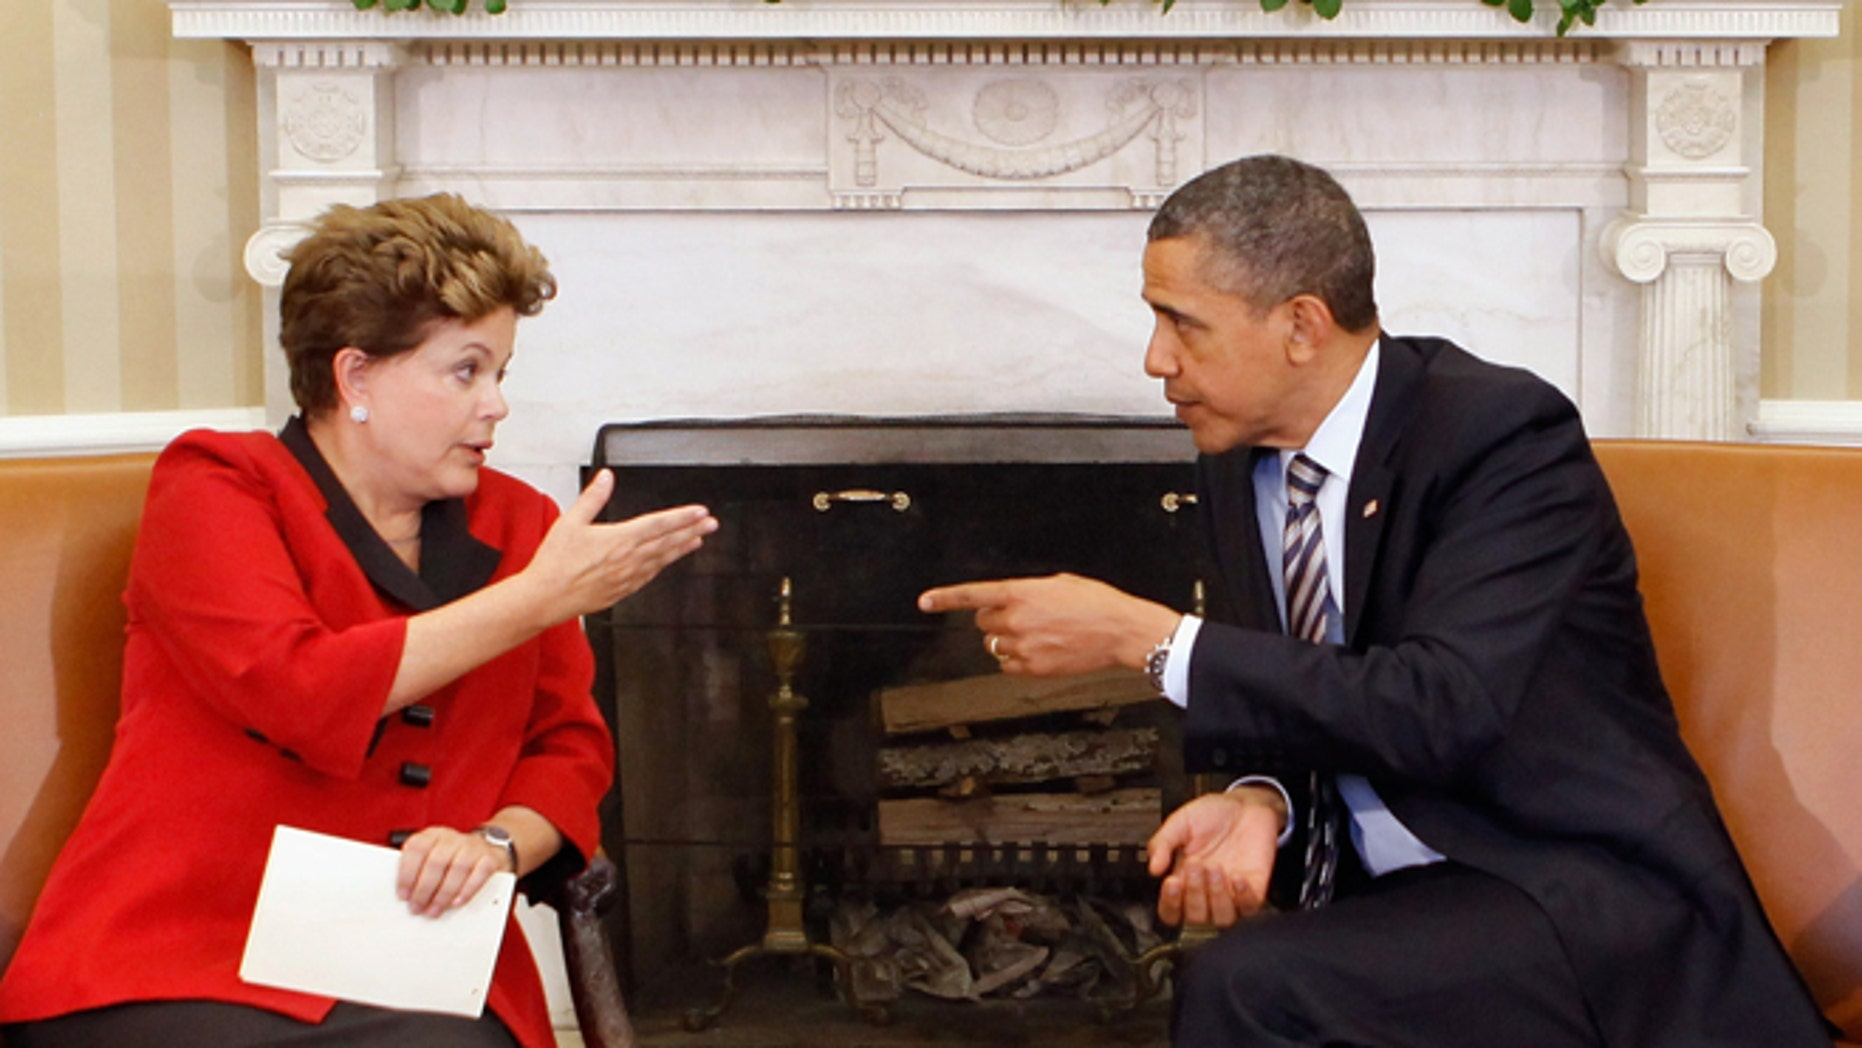 U.S. President Barack Obama and Brazilian President Dilma Rousseff meet in the Oval Office on April 9, 2012.